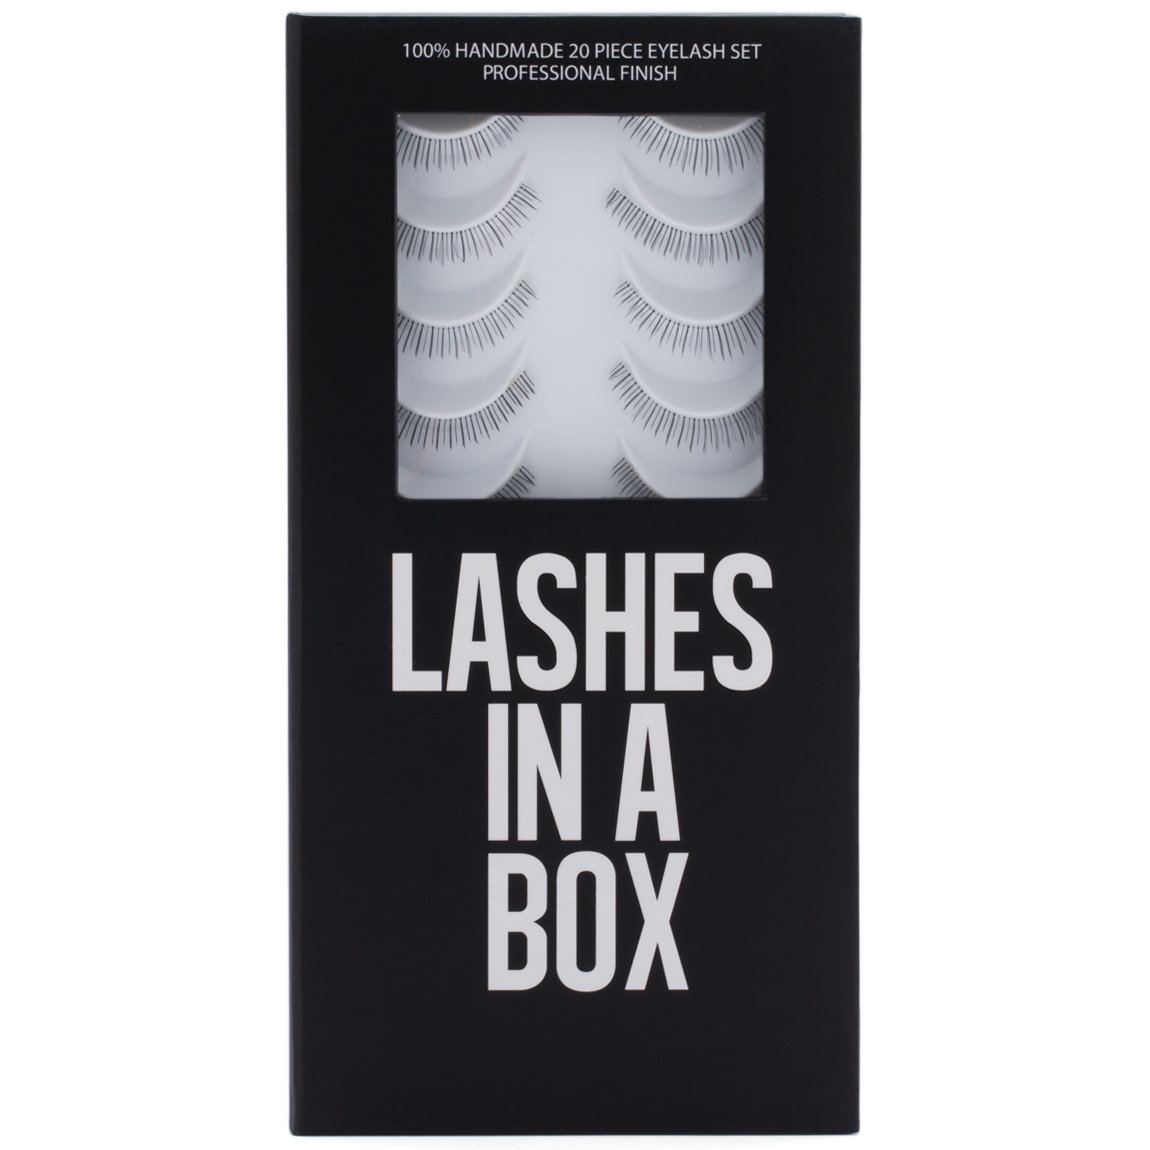 LASHES IN A BOX Lower Lash N°1 product swatch.